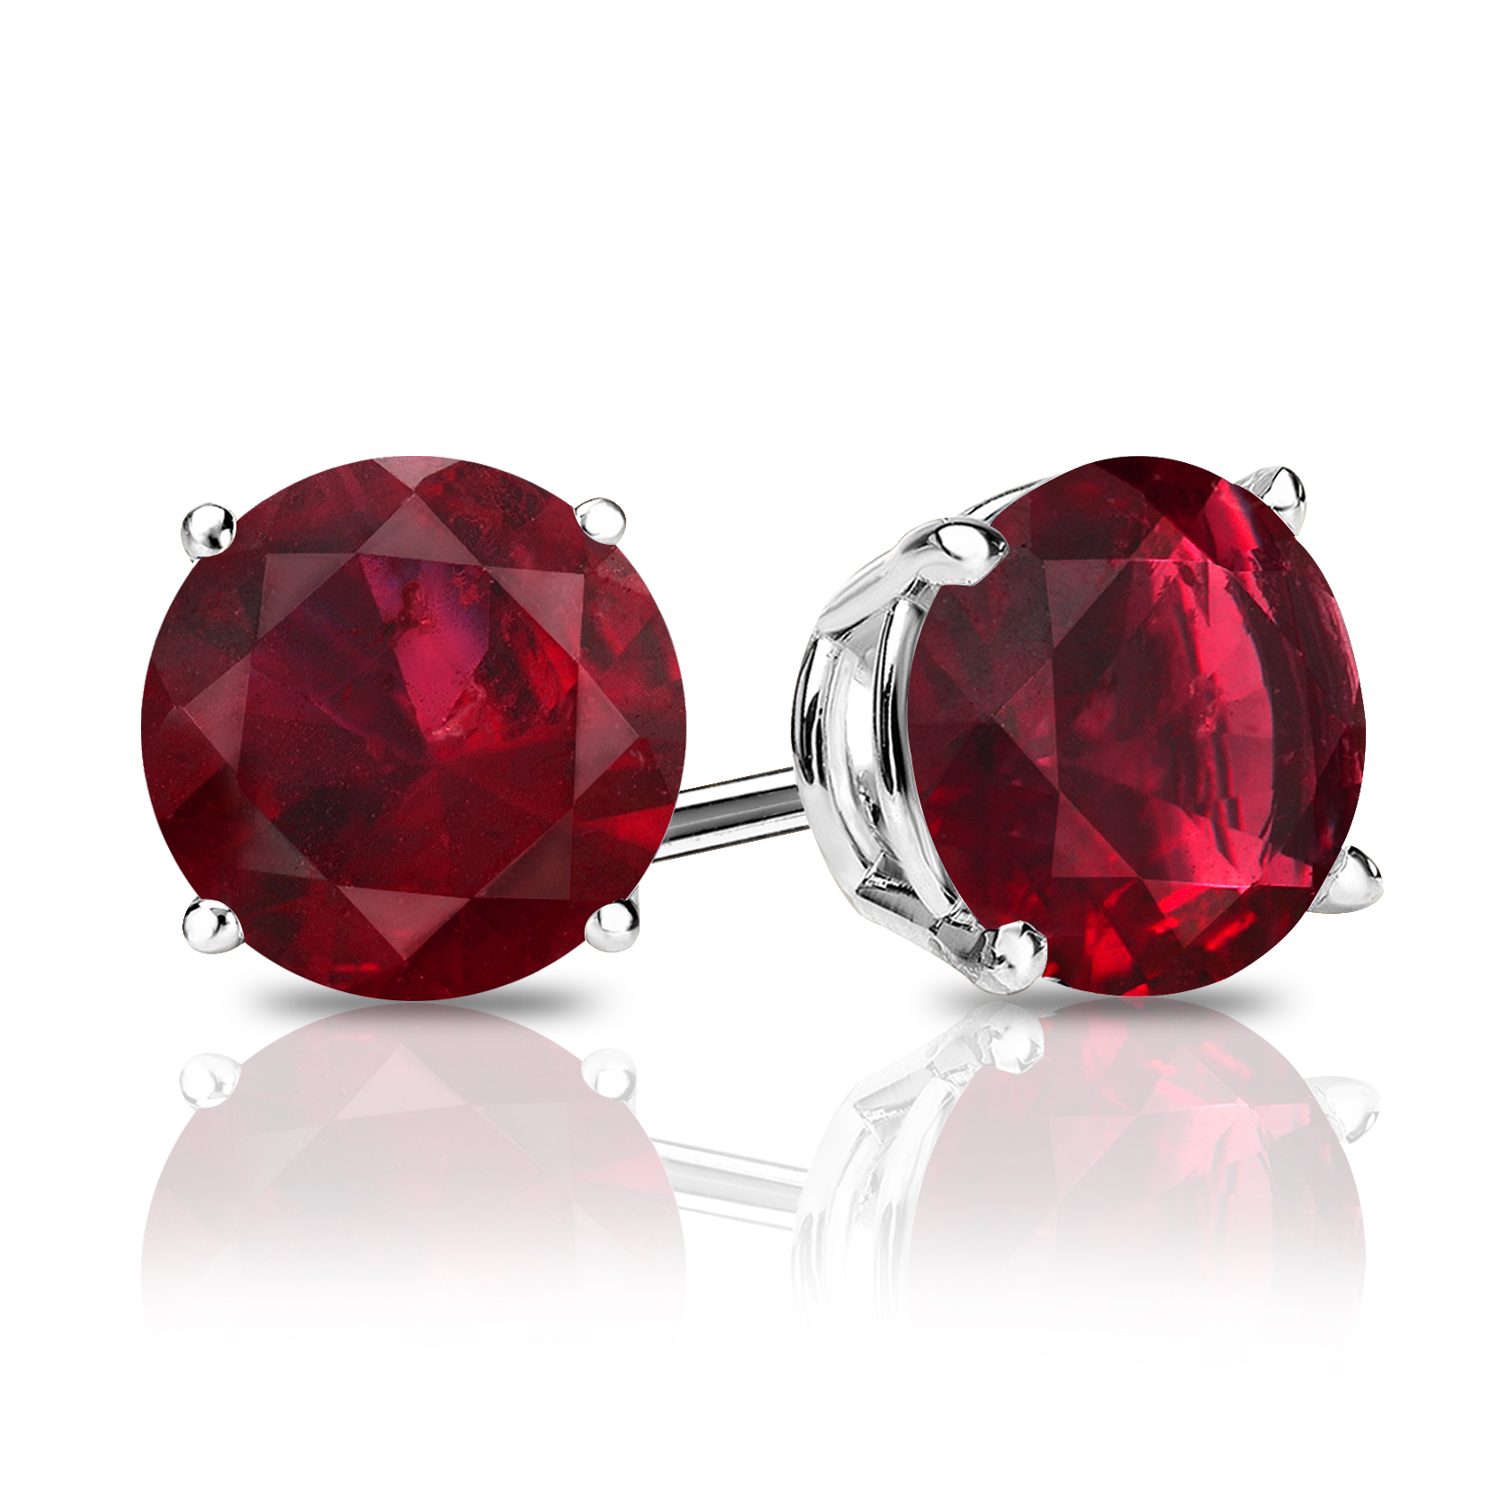 Certified 0.25 cttw Round Ruby Gemstone Stud Earrings in 14k White Gold 4-Prong Basket (Red, AAA)